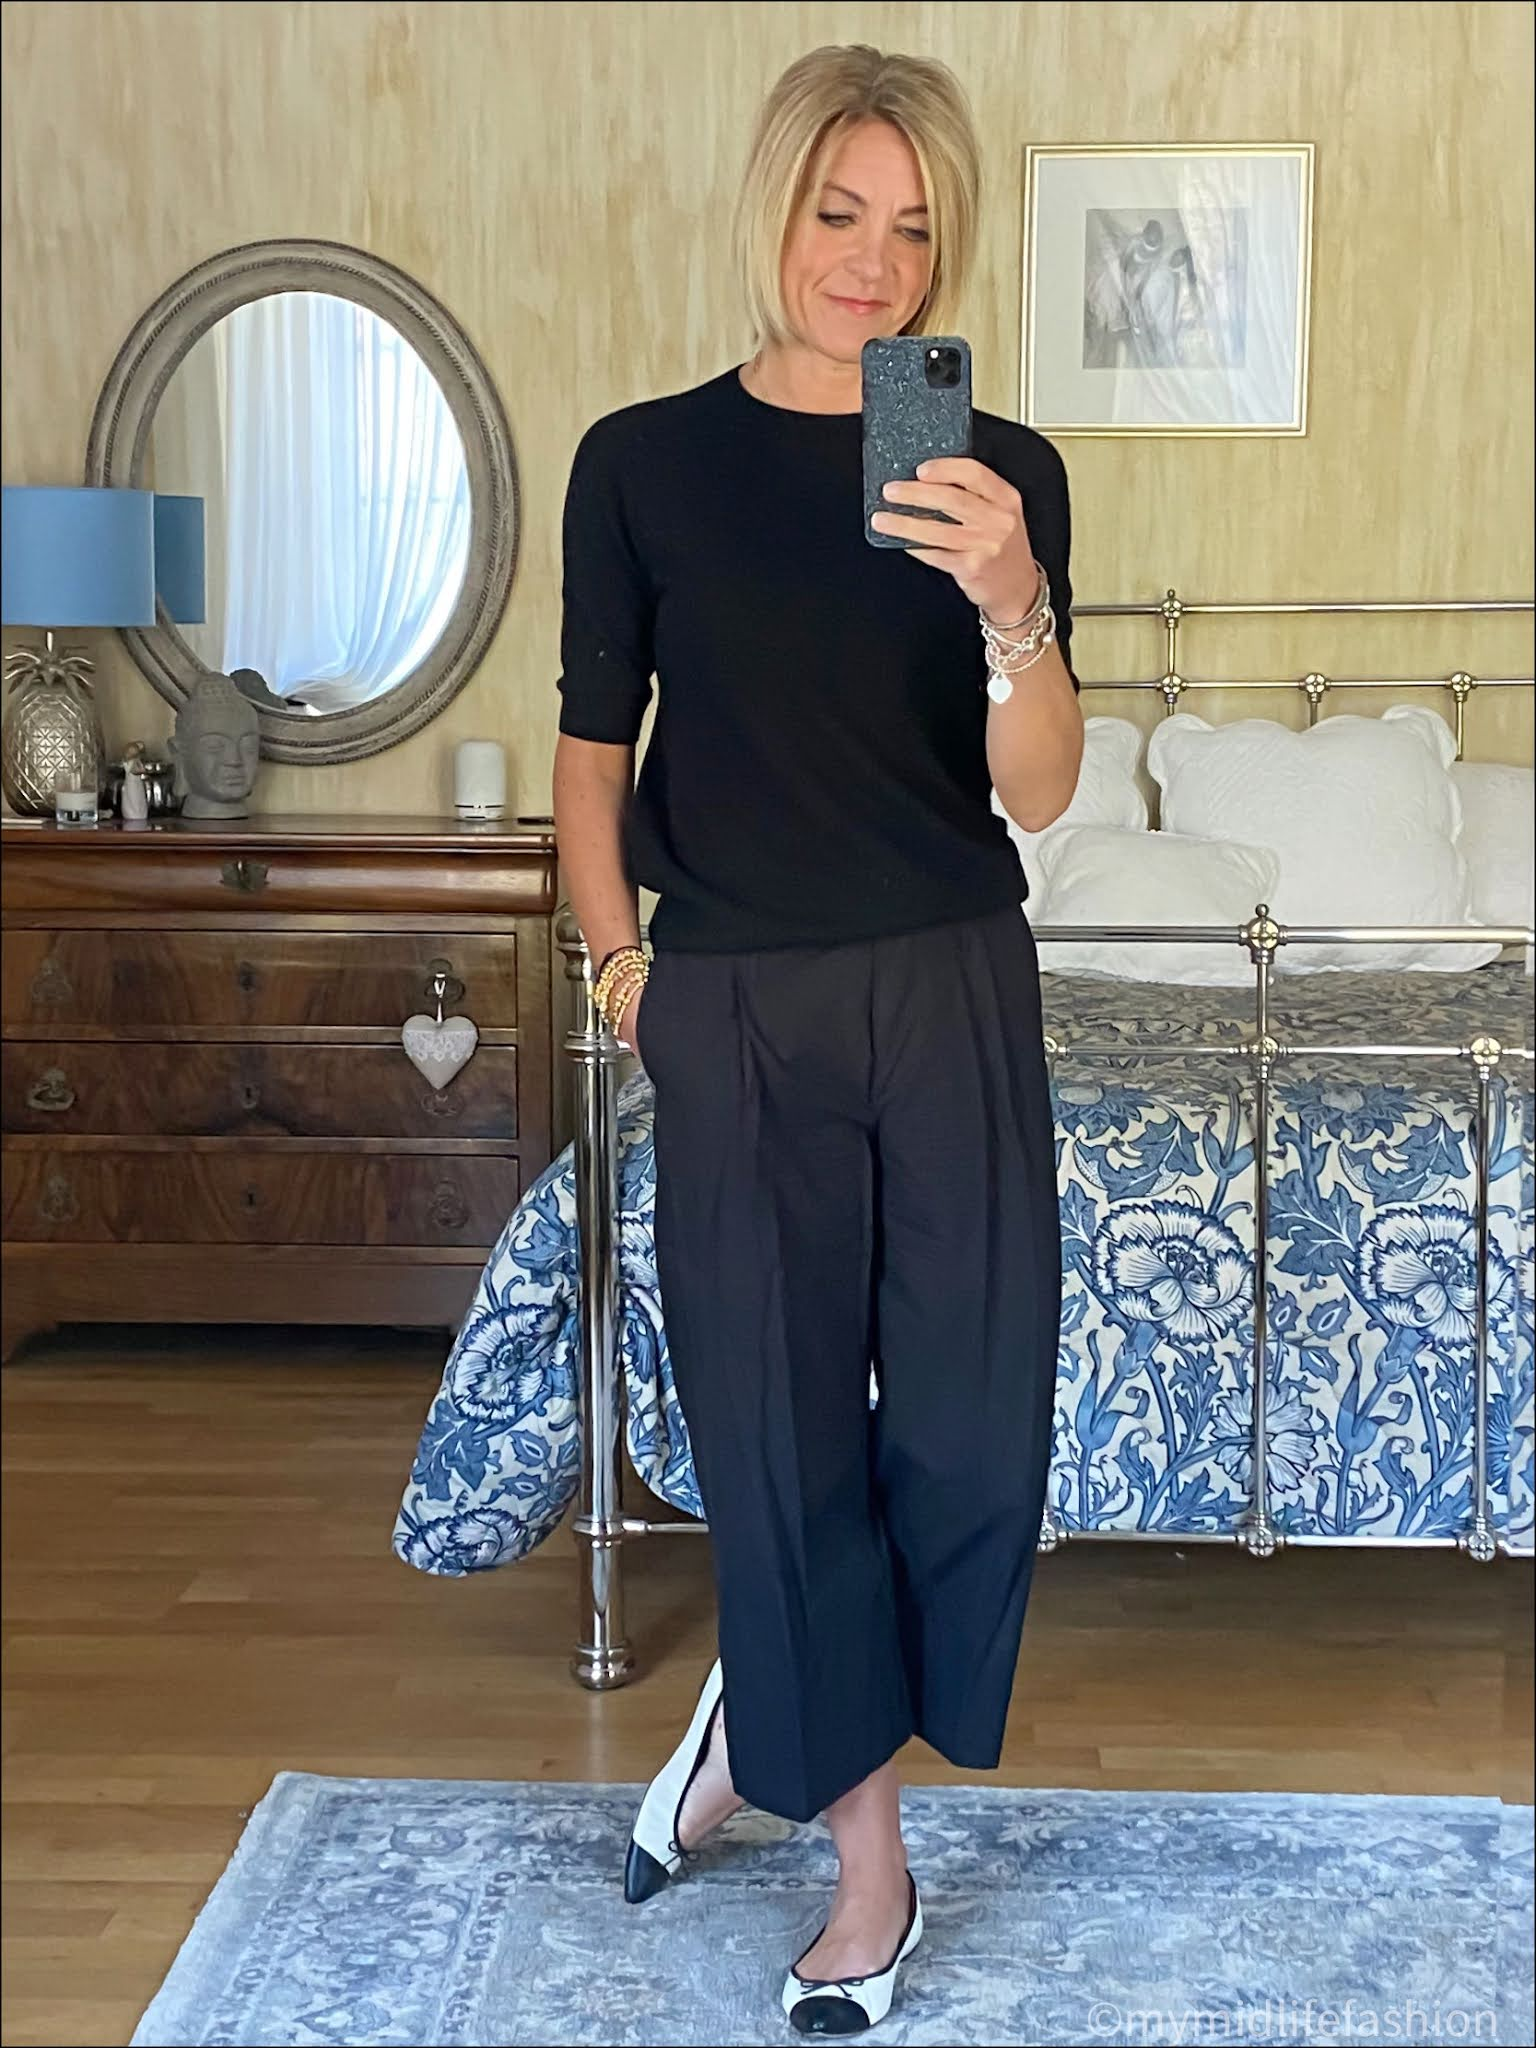 my midlife fashion, h and m short sleeve crew neck cashmere jumper, saint and Sofia shore ditch culottes, j crew two tone pointed ballet flats